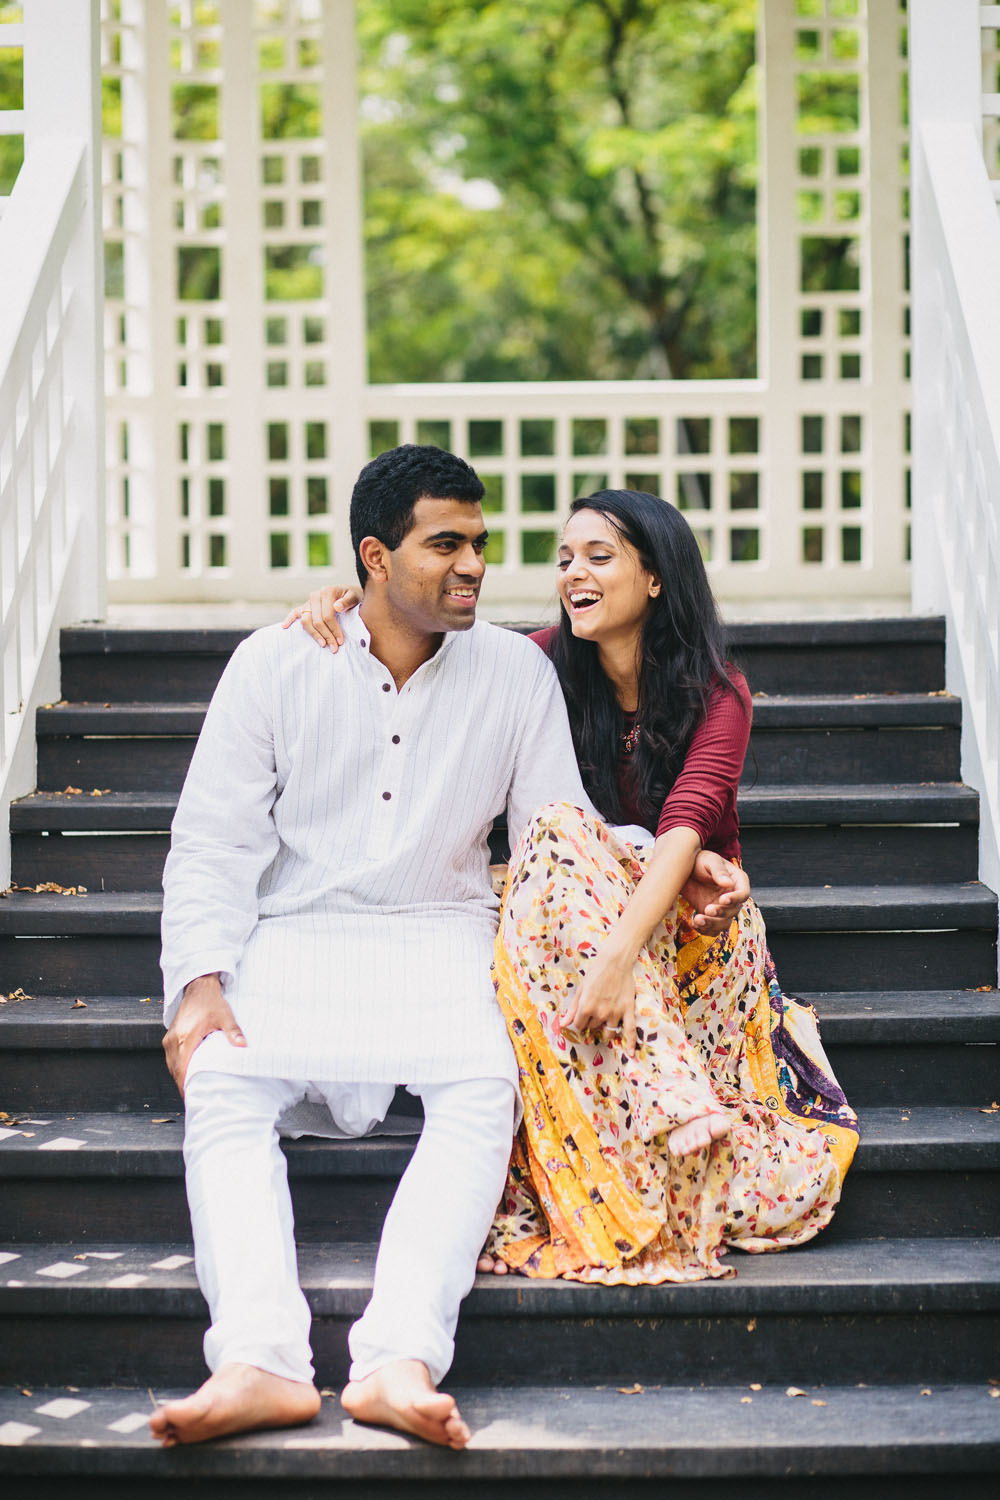 singapore-wedding-photographer-we-made-these-dhriti-arjun-08.jpg